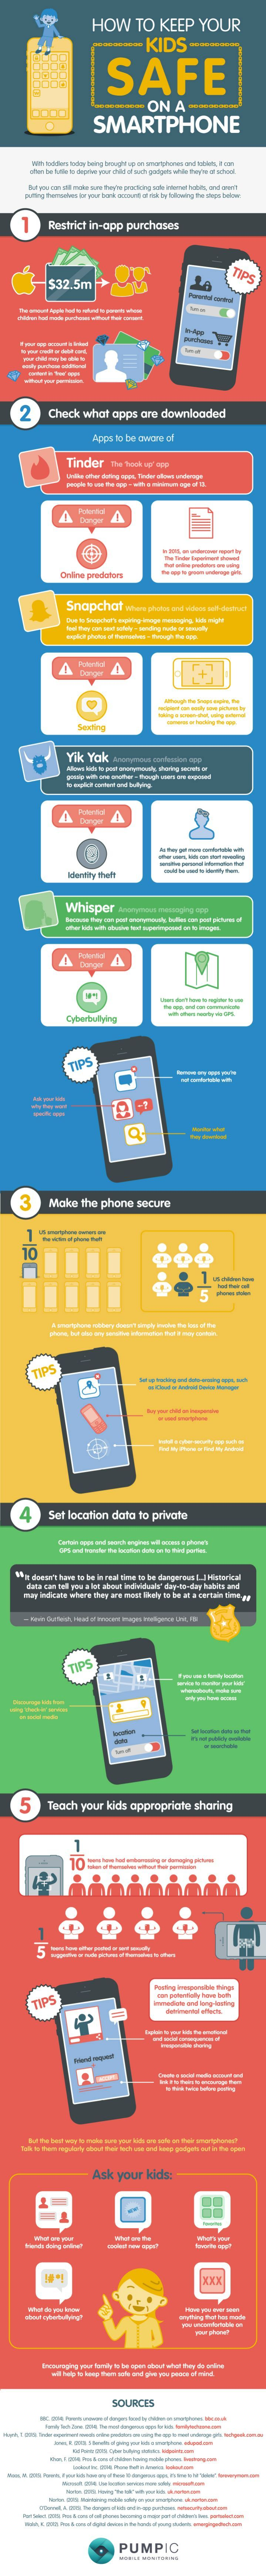 How to Keep Your Kid Safe on a Smartphone #infographic